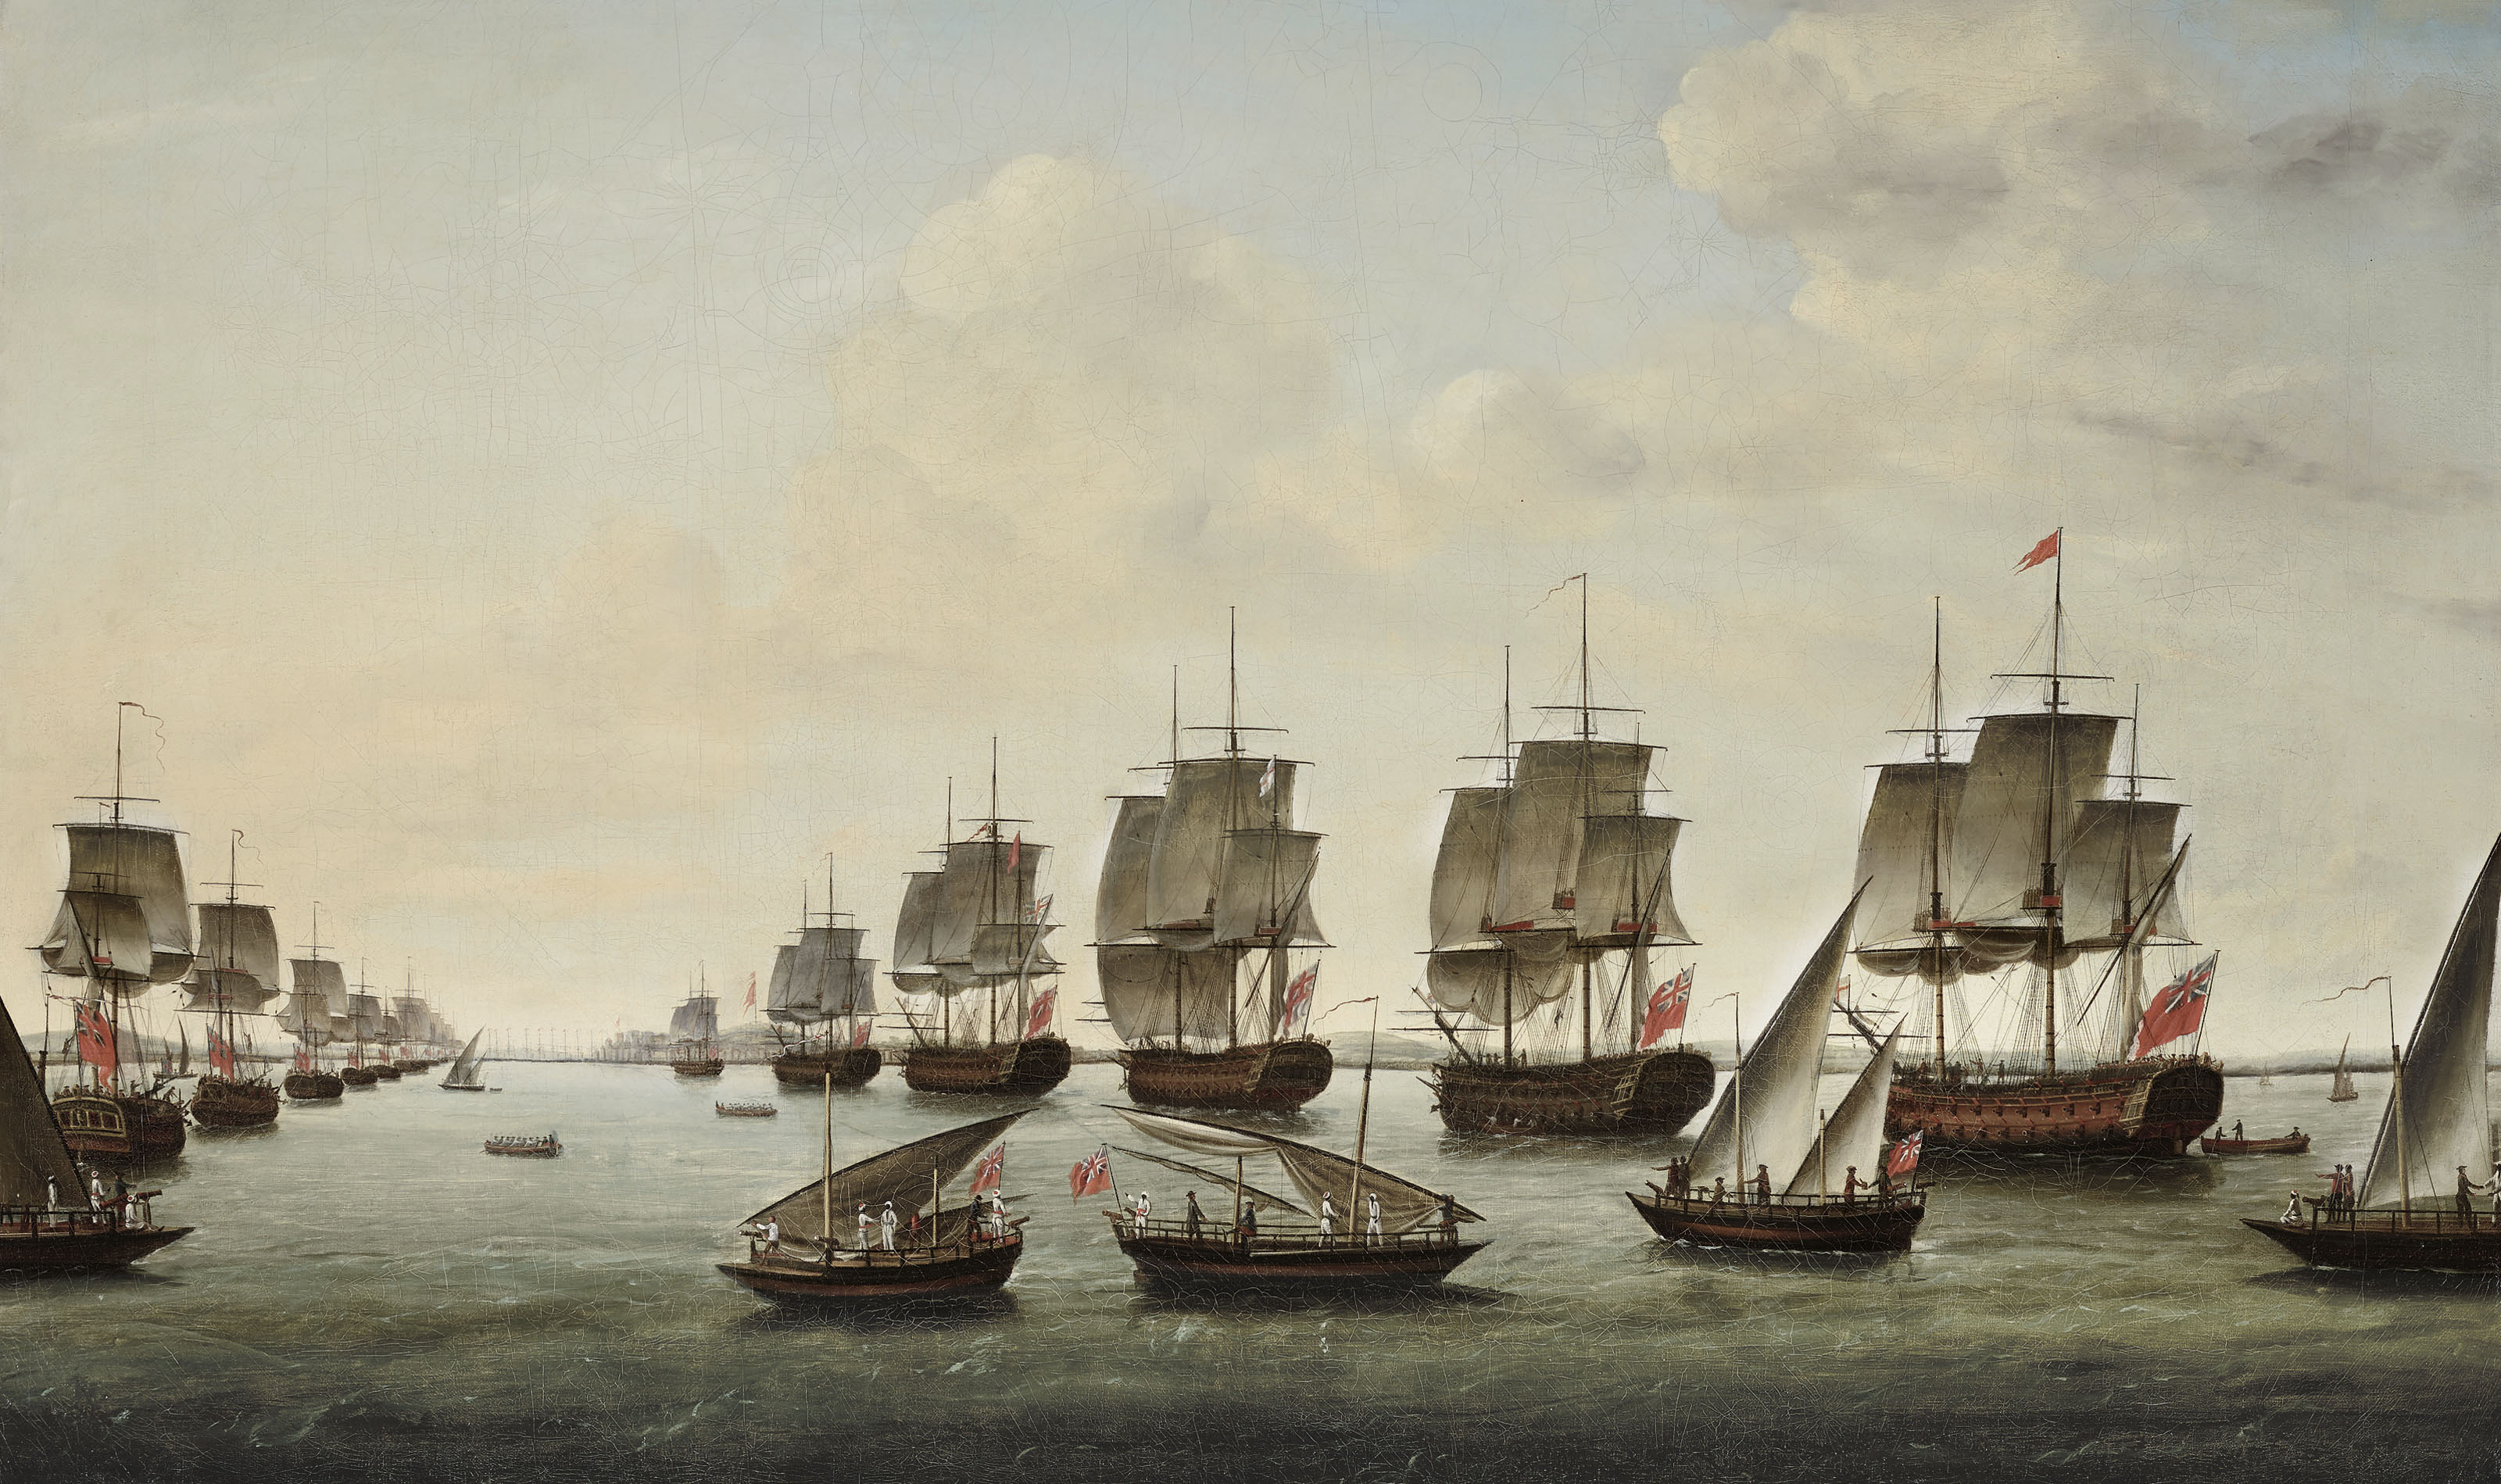 The fleet, under the command of Rear-Admiral Charles Watson and Commodore William James, approaching Geriah on 12 February 1756 for the final showdown with the pirate Tulagee Angria